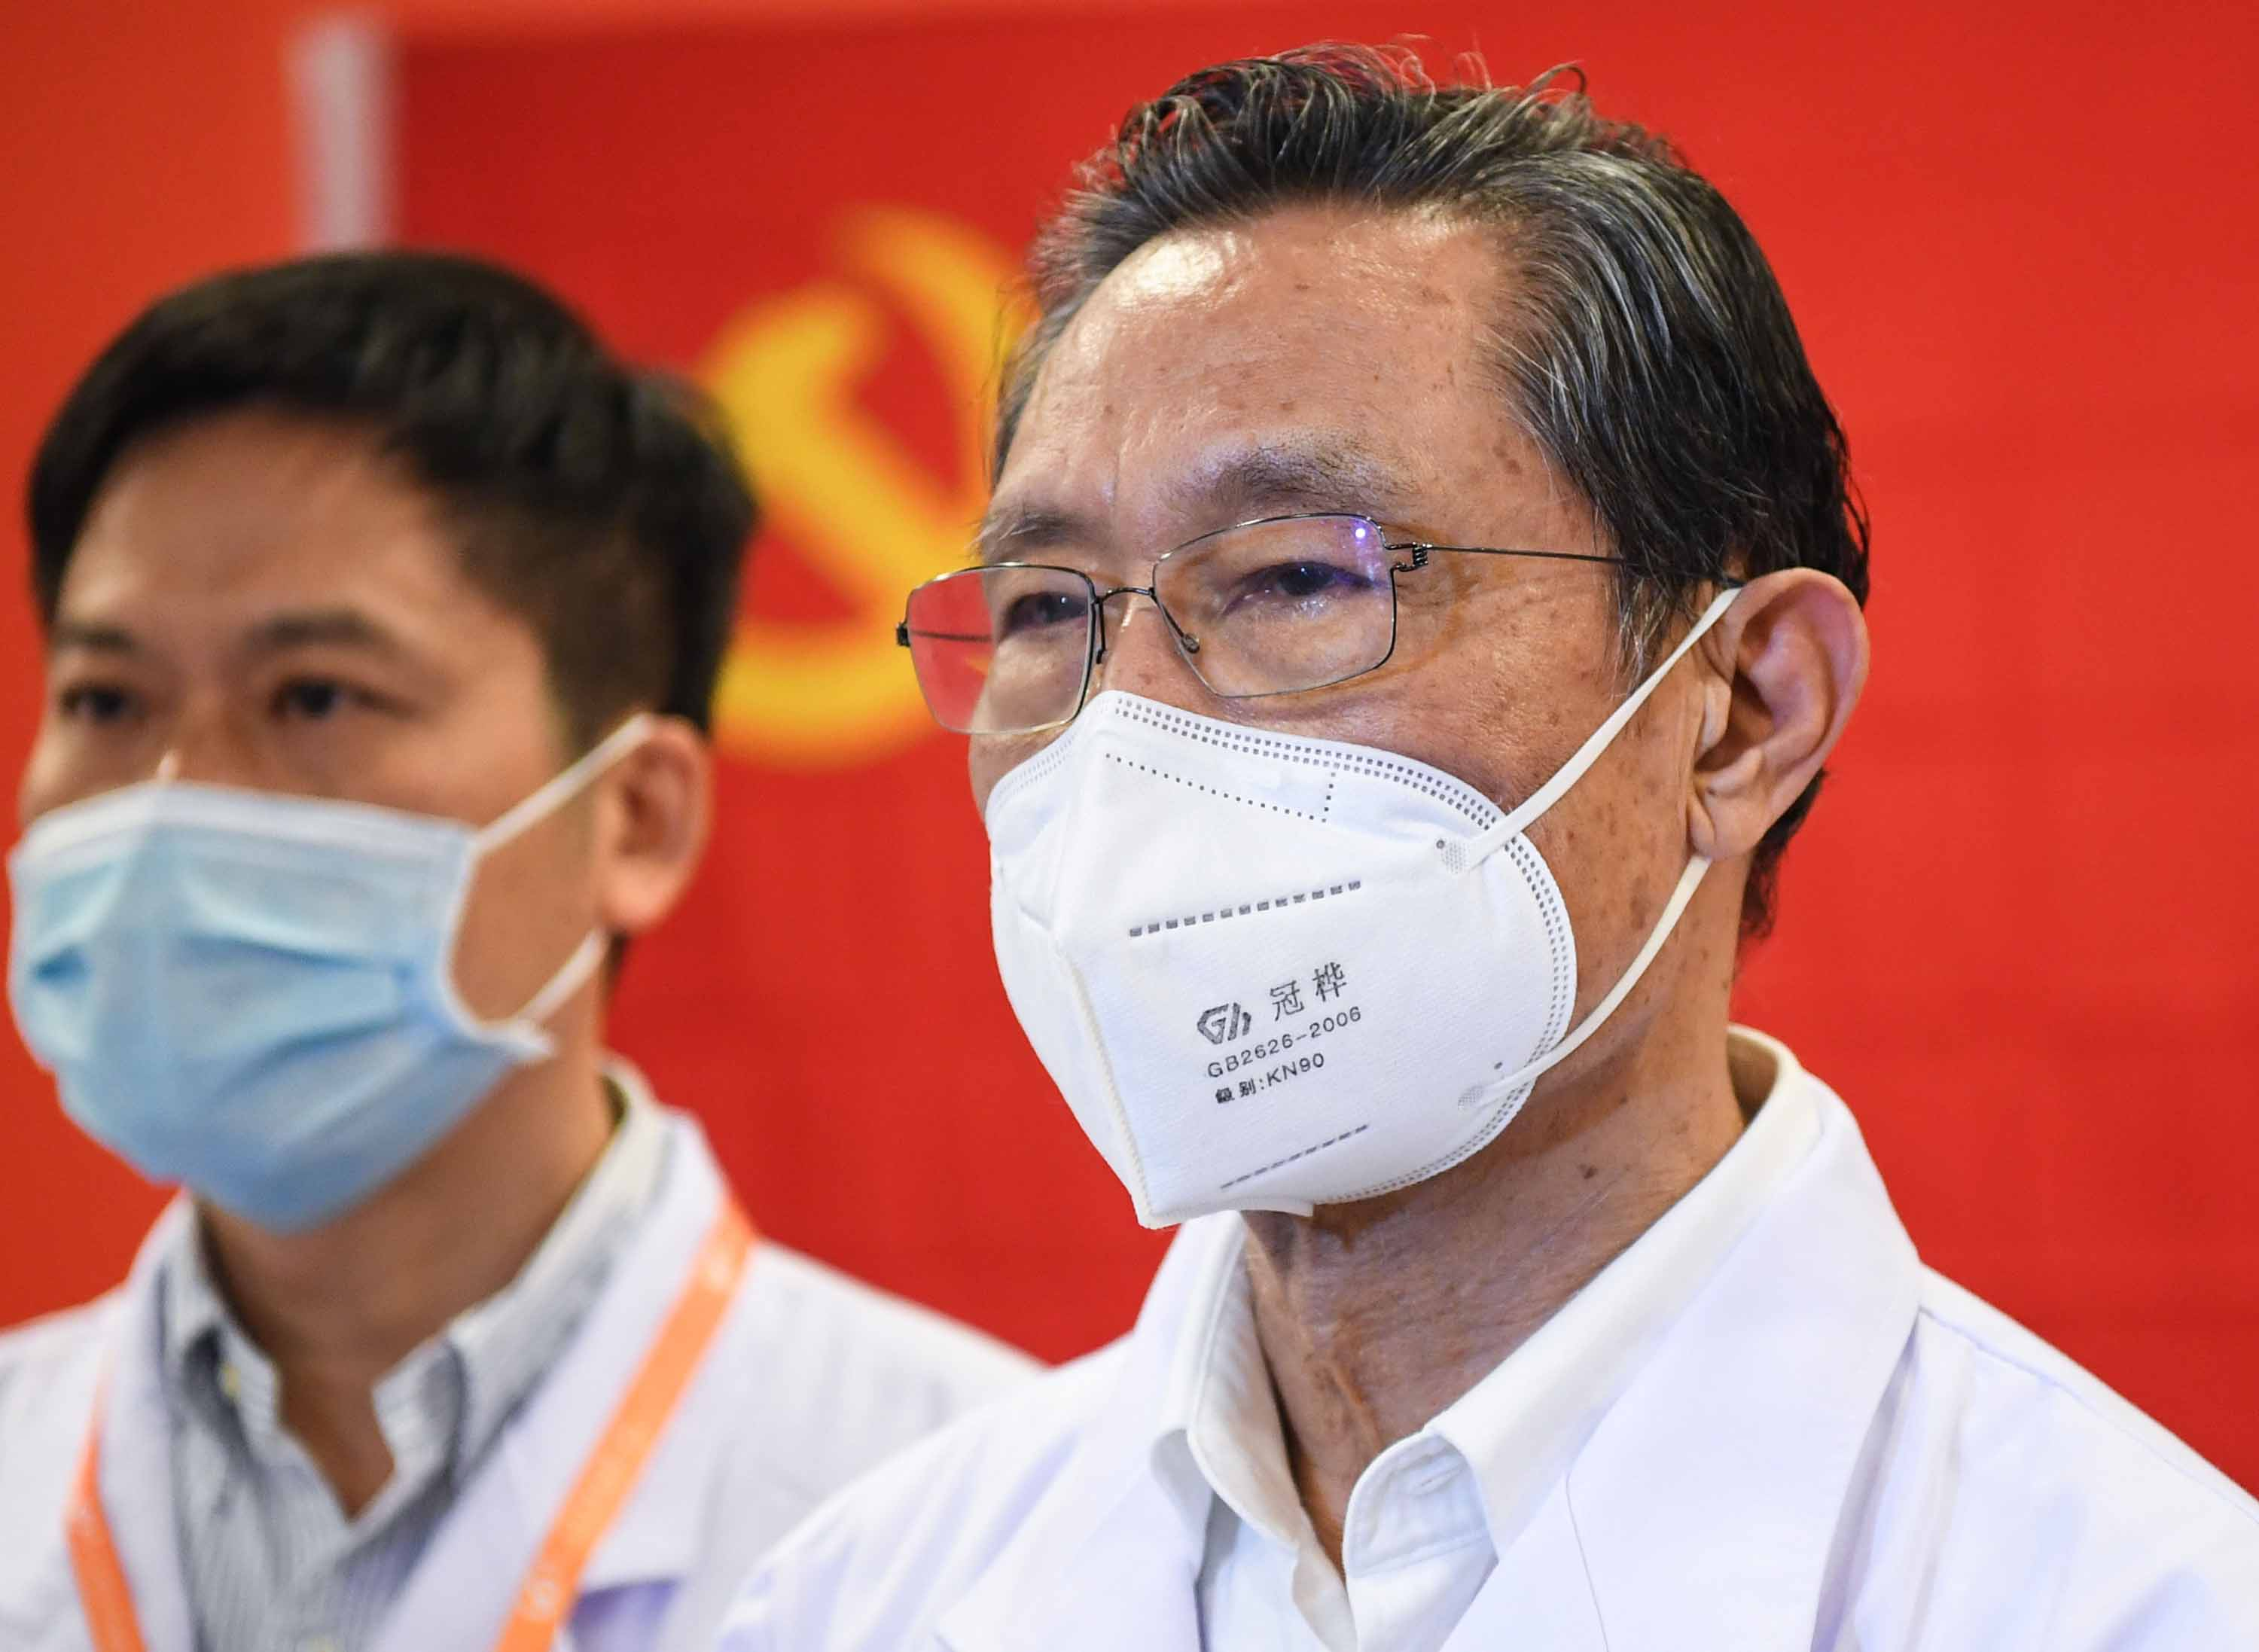 Chinese respiratory specialist Zhong Nanshan, right, attends an event in Guangzhou, China, on March 2.